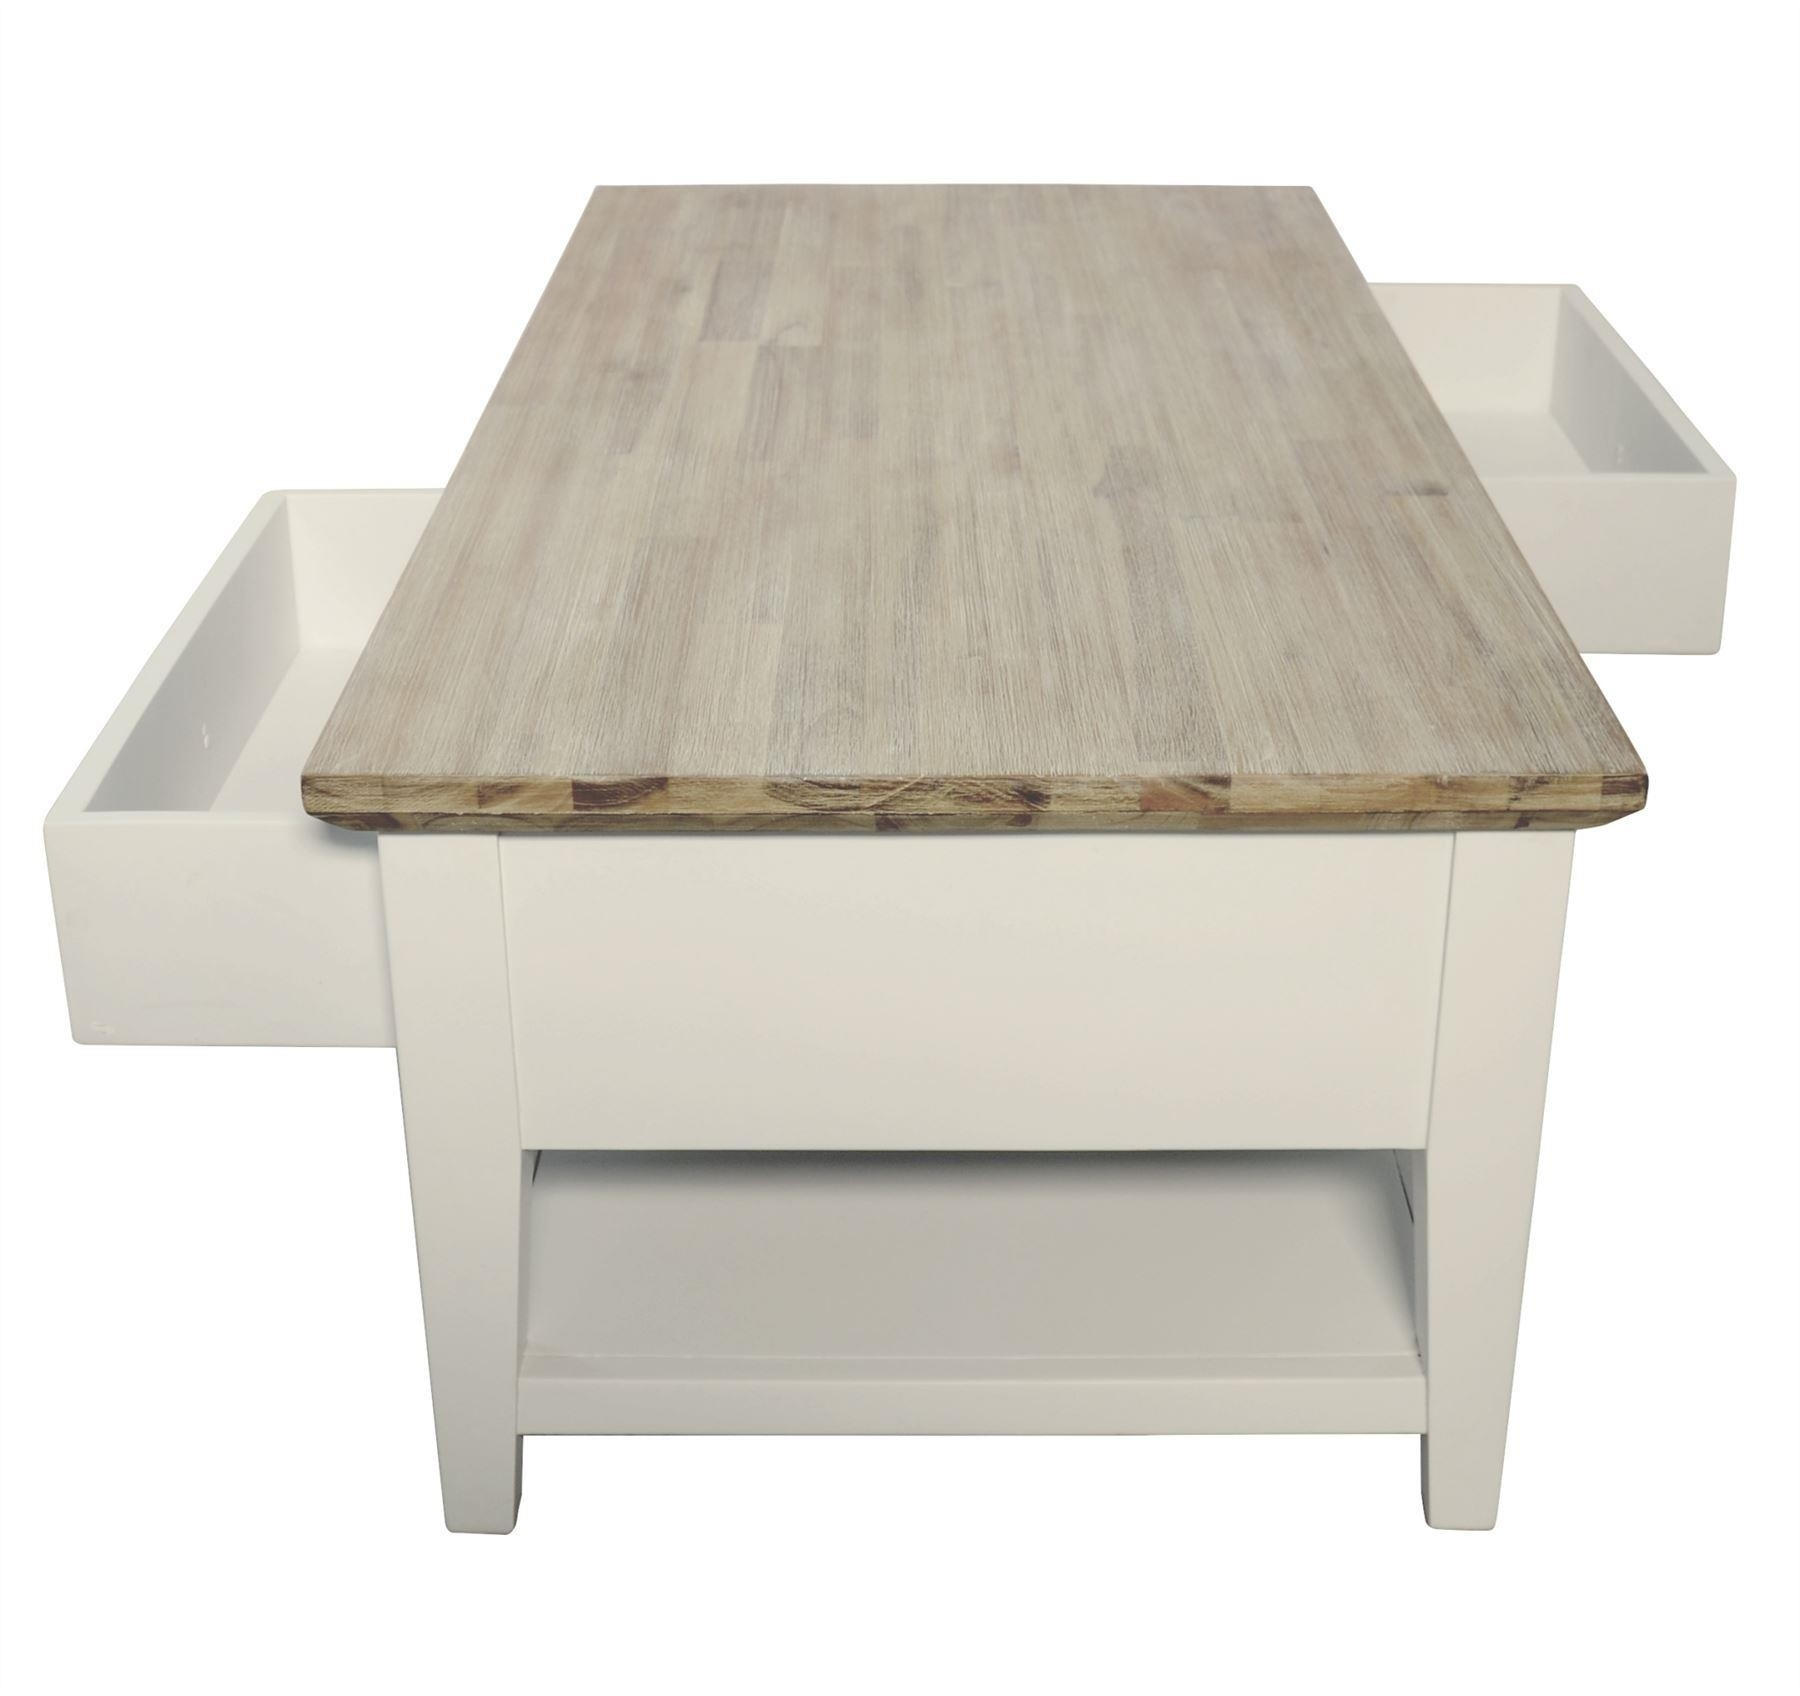 Lime Wash Coffee Table Unique Florence Coffee Table White – Coffee Table inside Limewash Coffee Tables (Image 21 of 30)